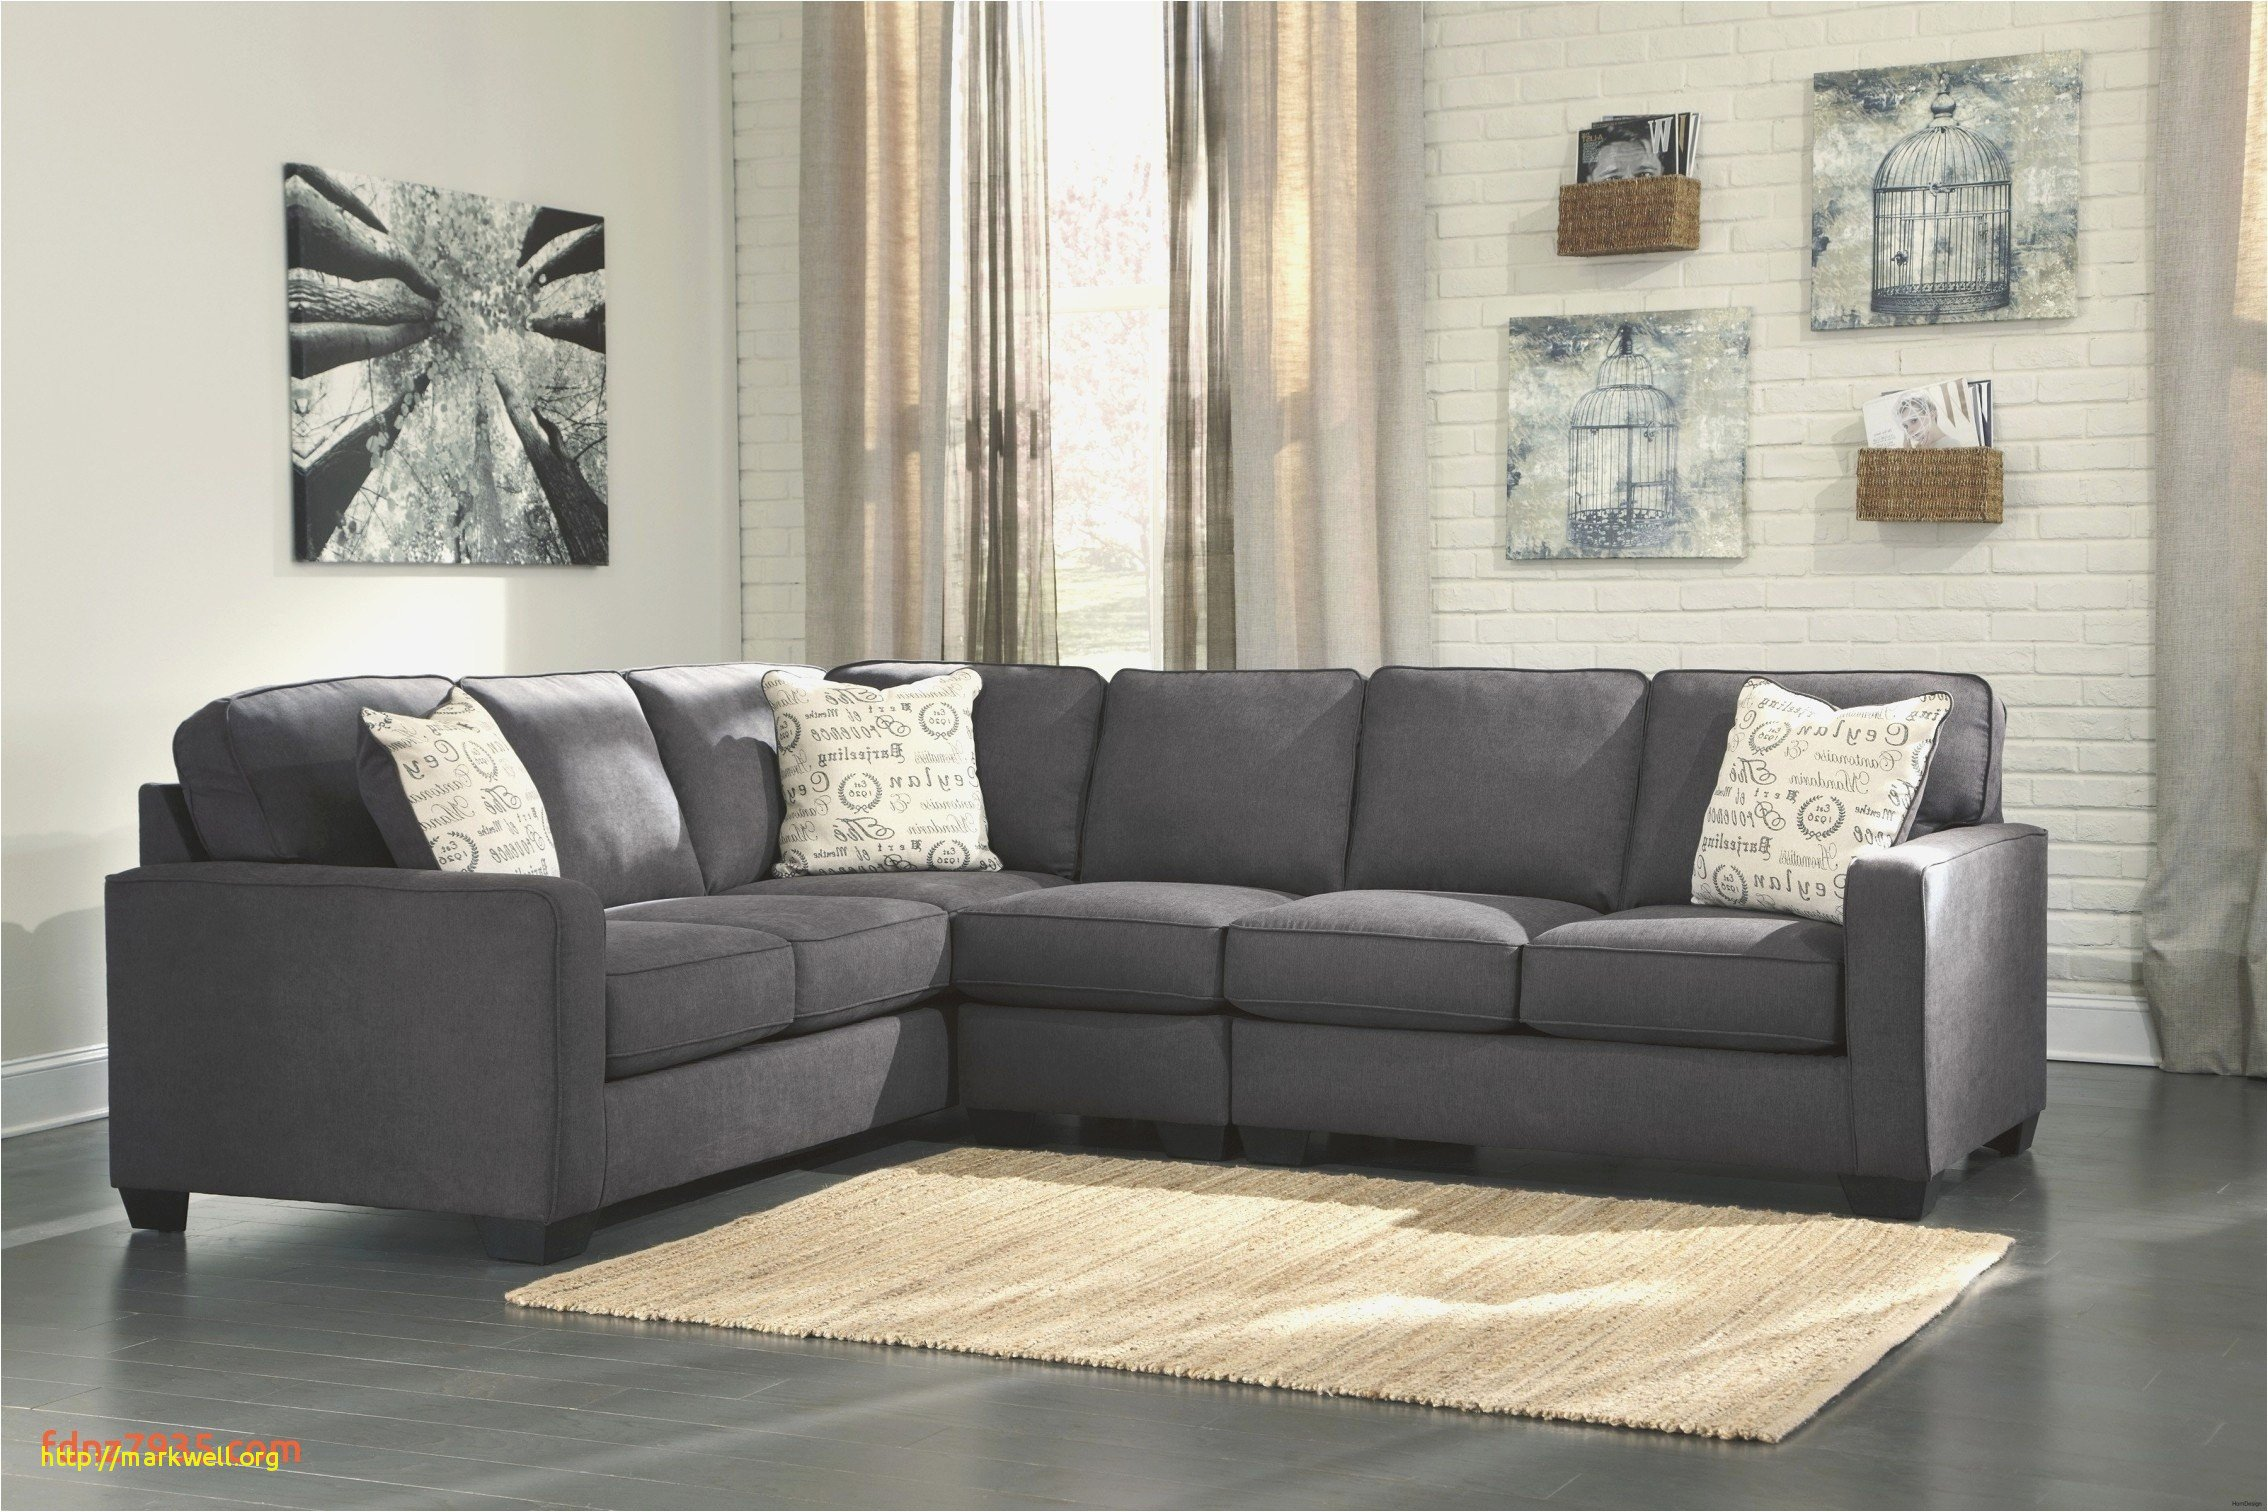 Mini Couch for Bedroom New Awesome Bobs Living Room Furniture